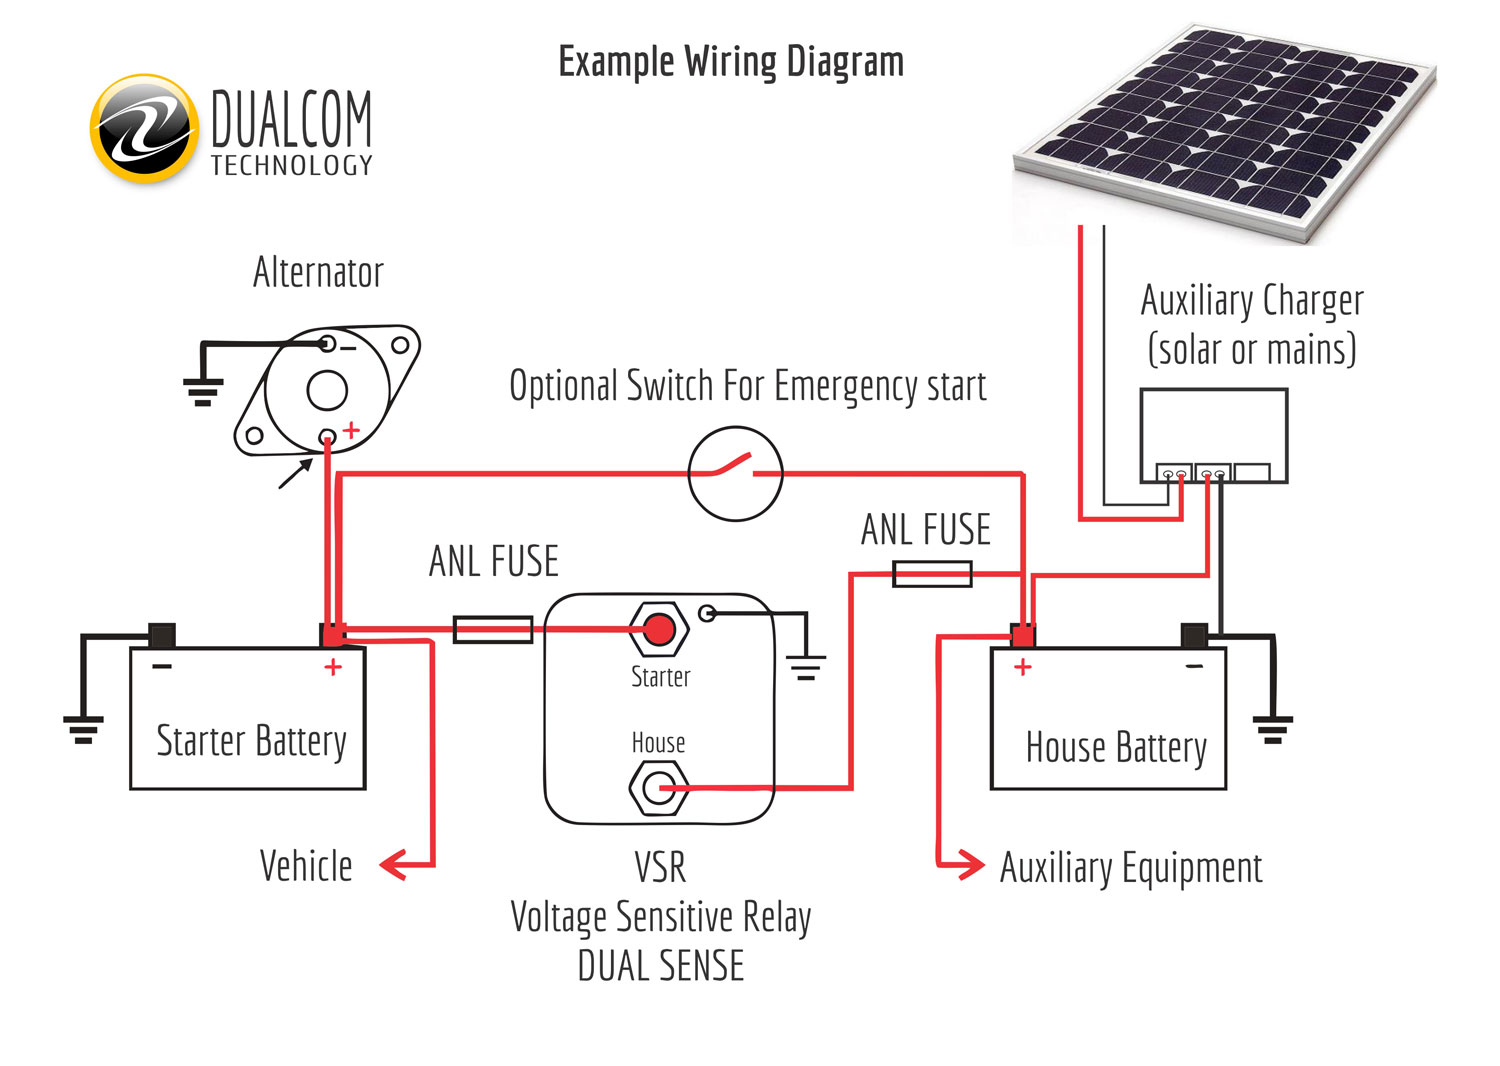 How A Vsr Voltage Sensitive Relay Works Energy Unlimited Wiring Diagram Caravan Solar Panel The Blog